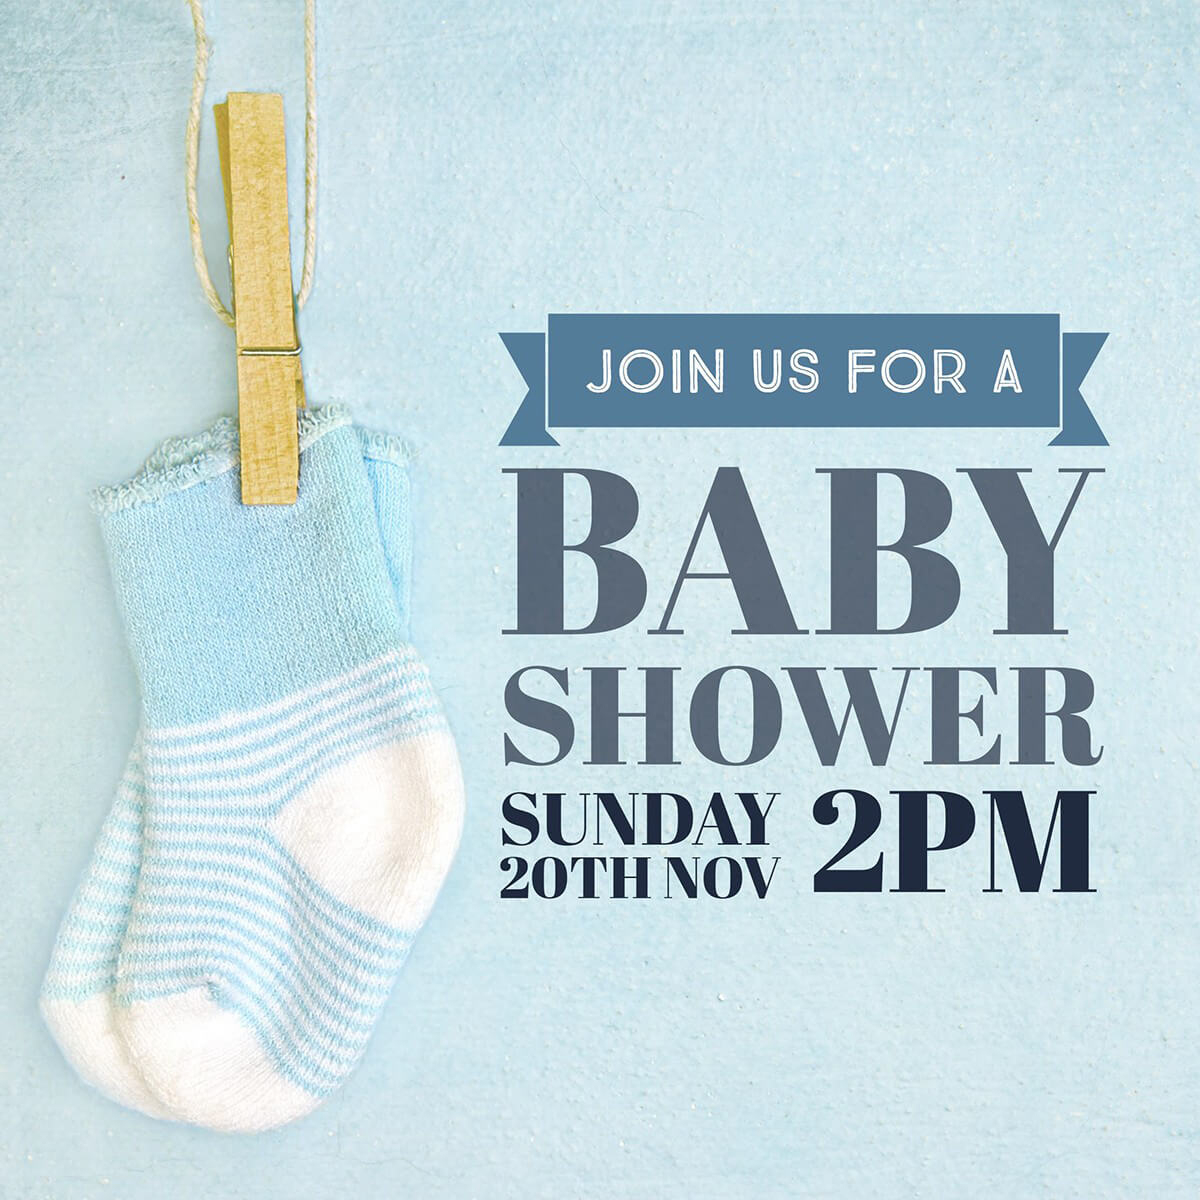 Make Your Own Baby Shower Invitations For Free | Adobe Spark - Baby Shower Cards Online Free Printable